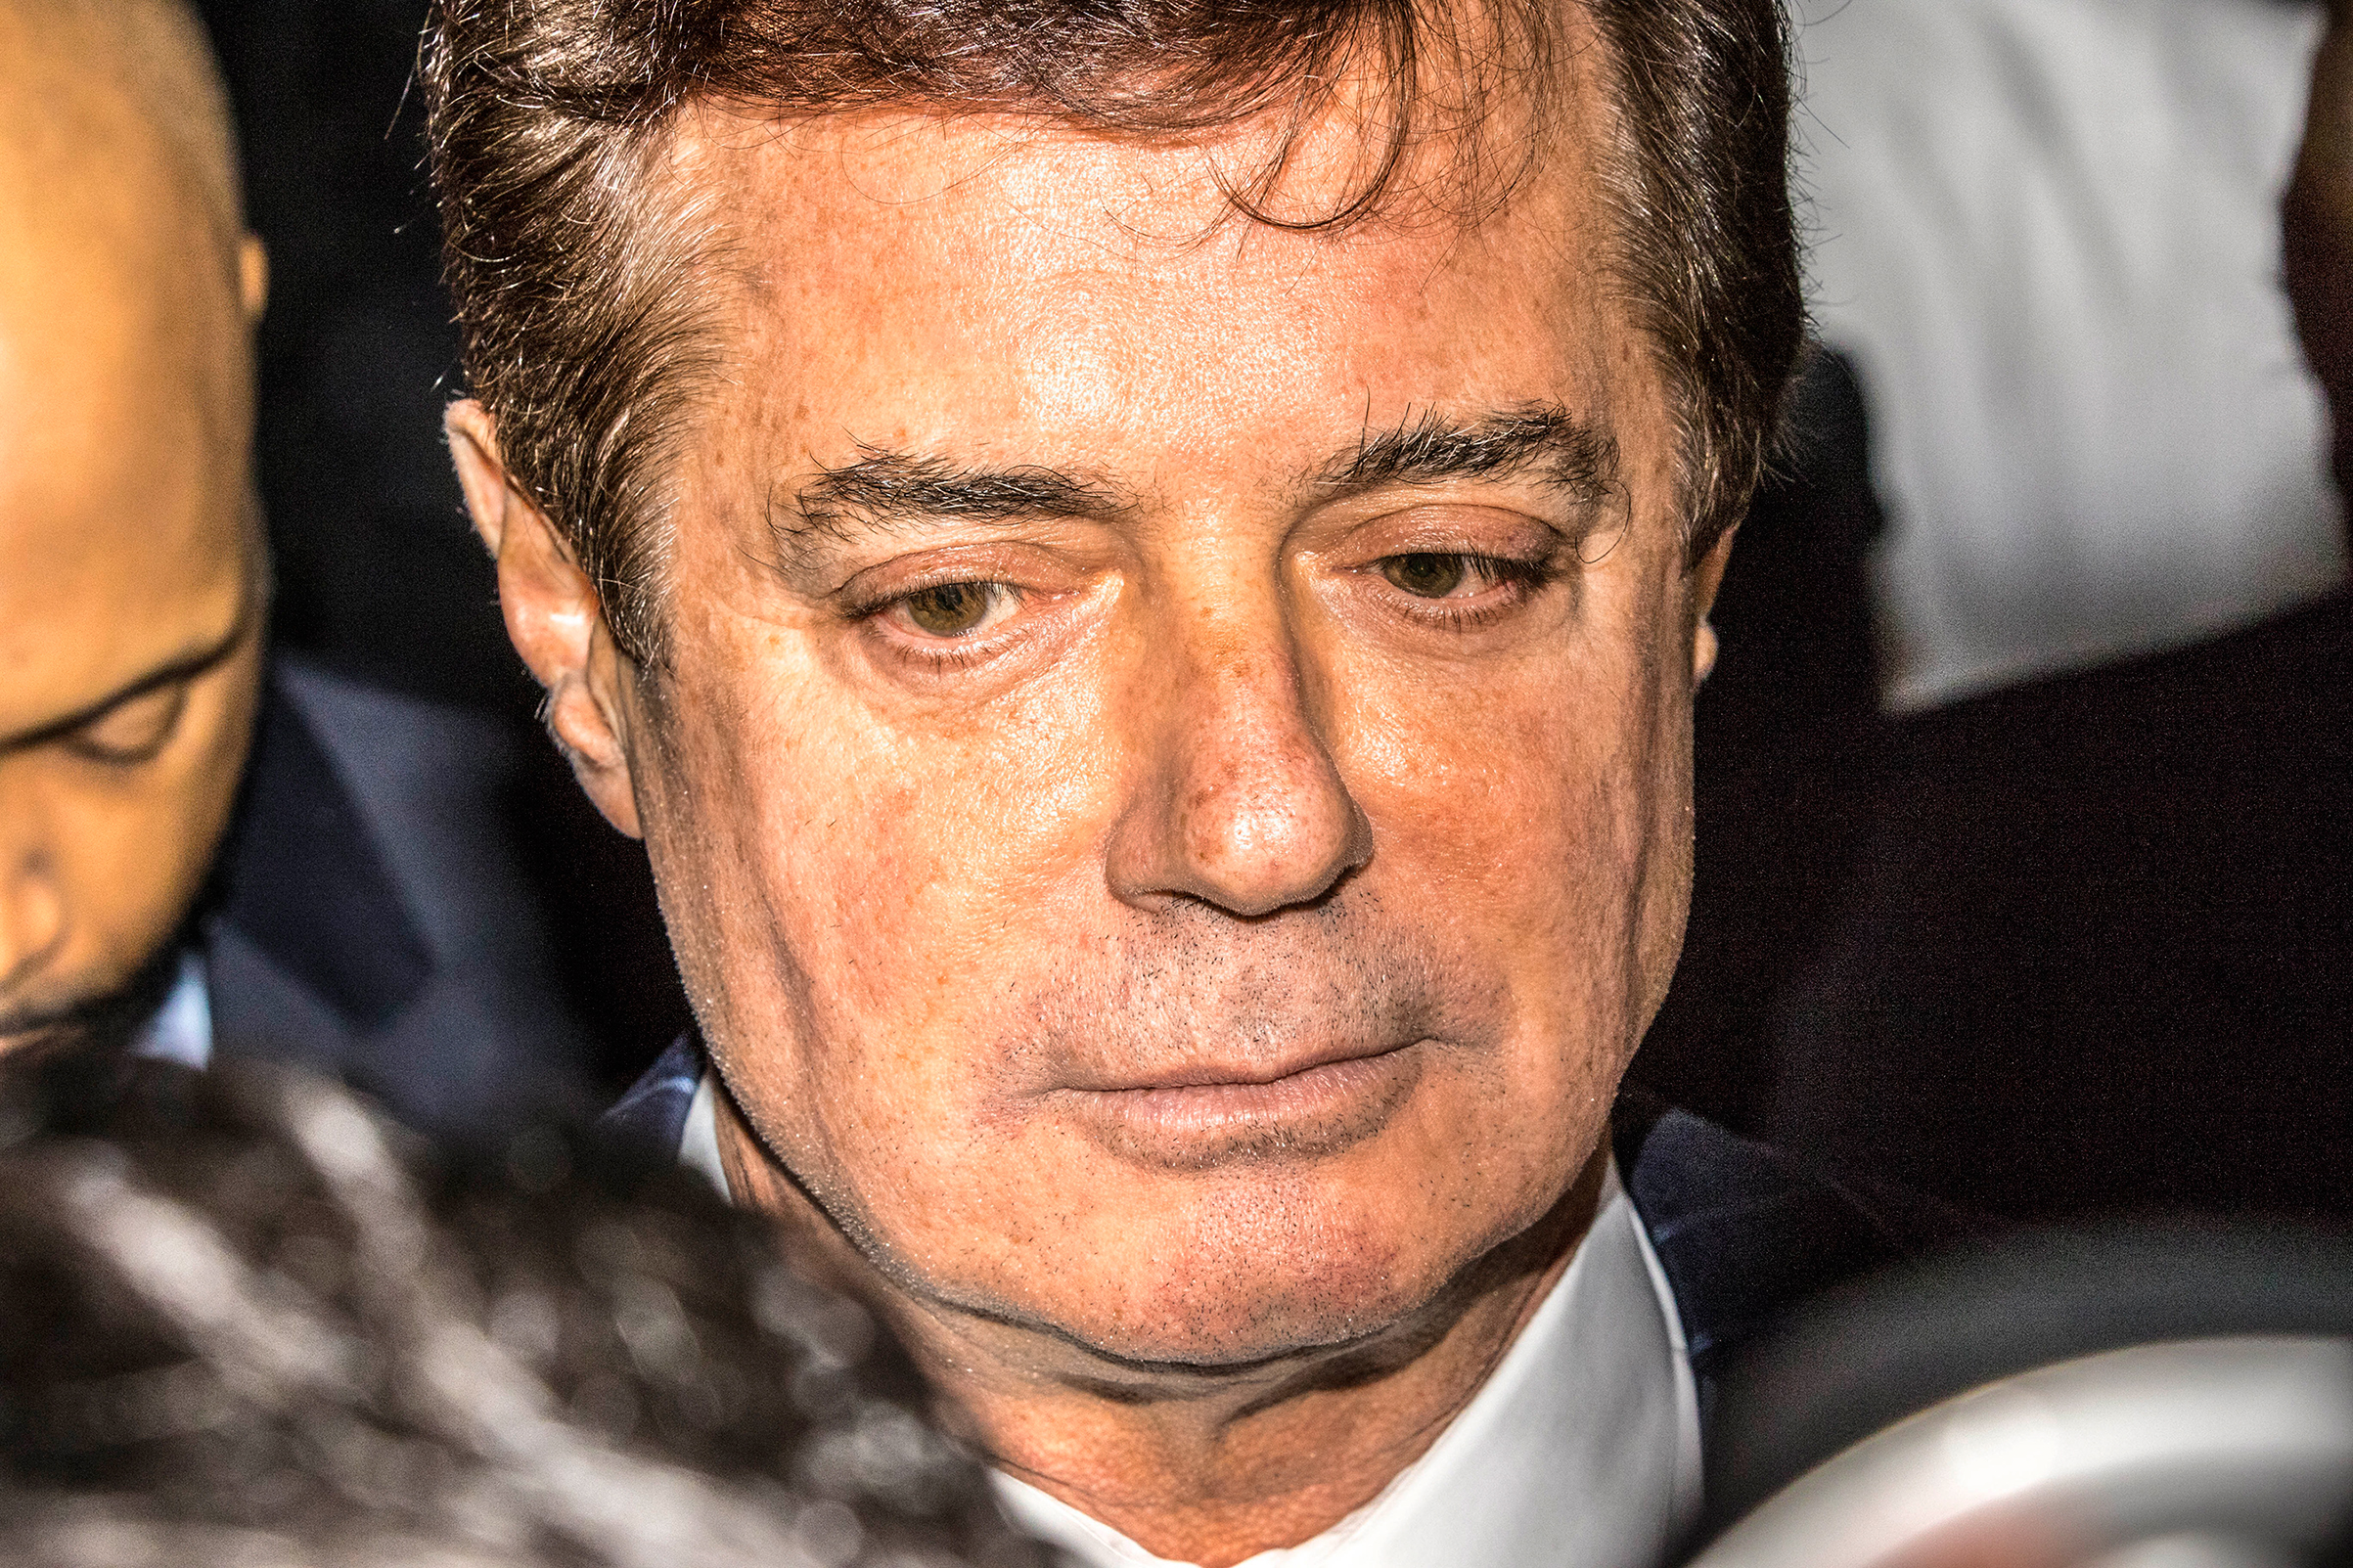 Manafort, the President's former campaign chairman, was charged with tax fraud and money laundering